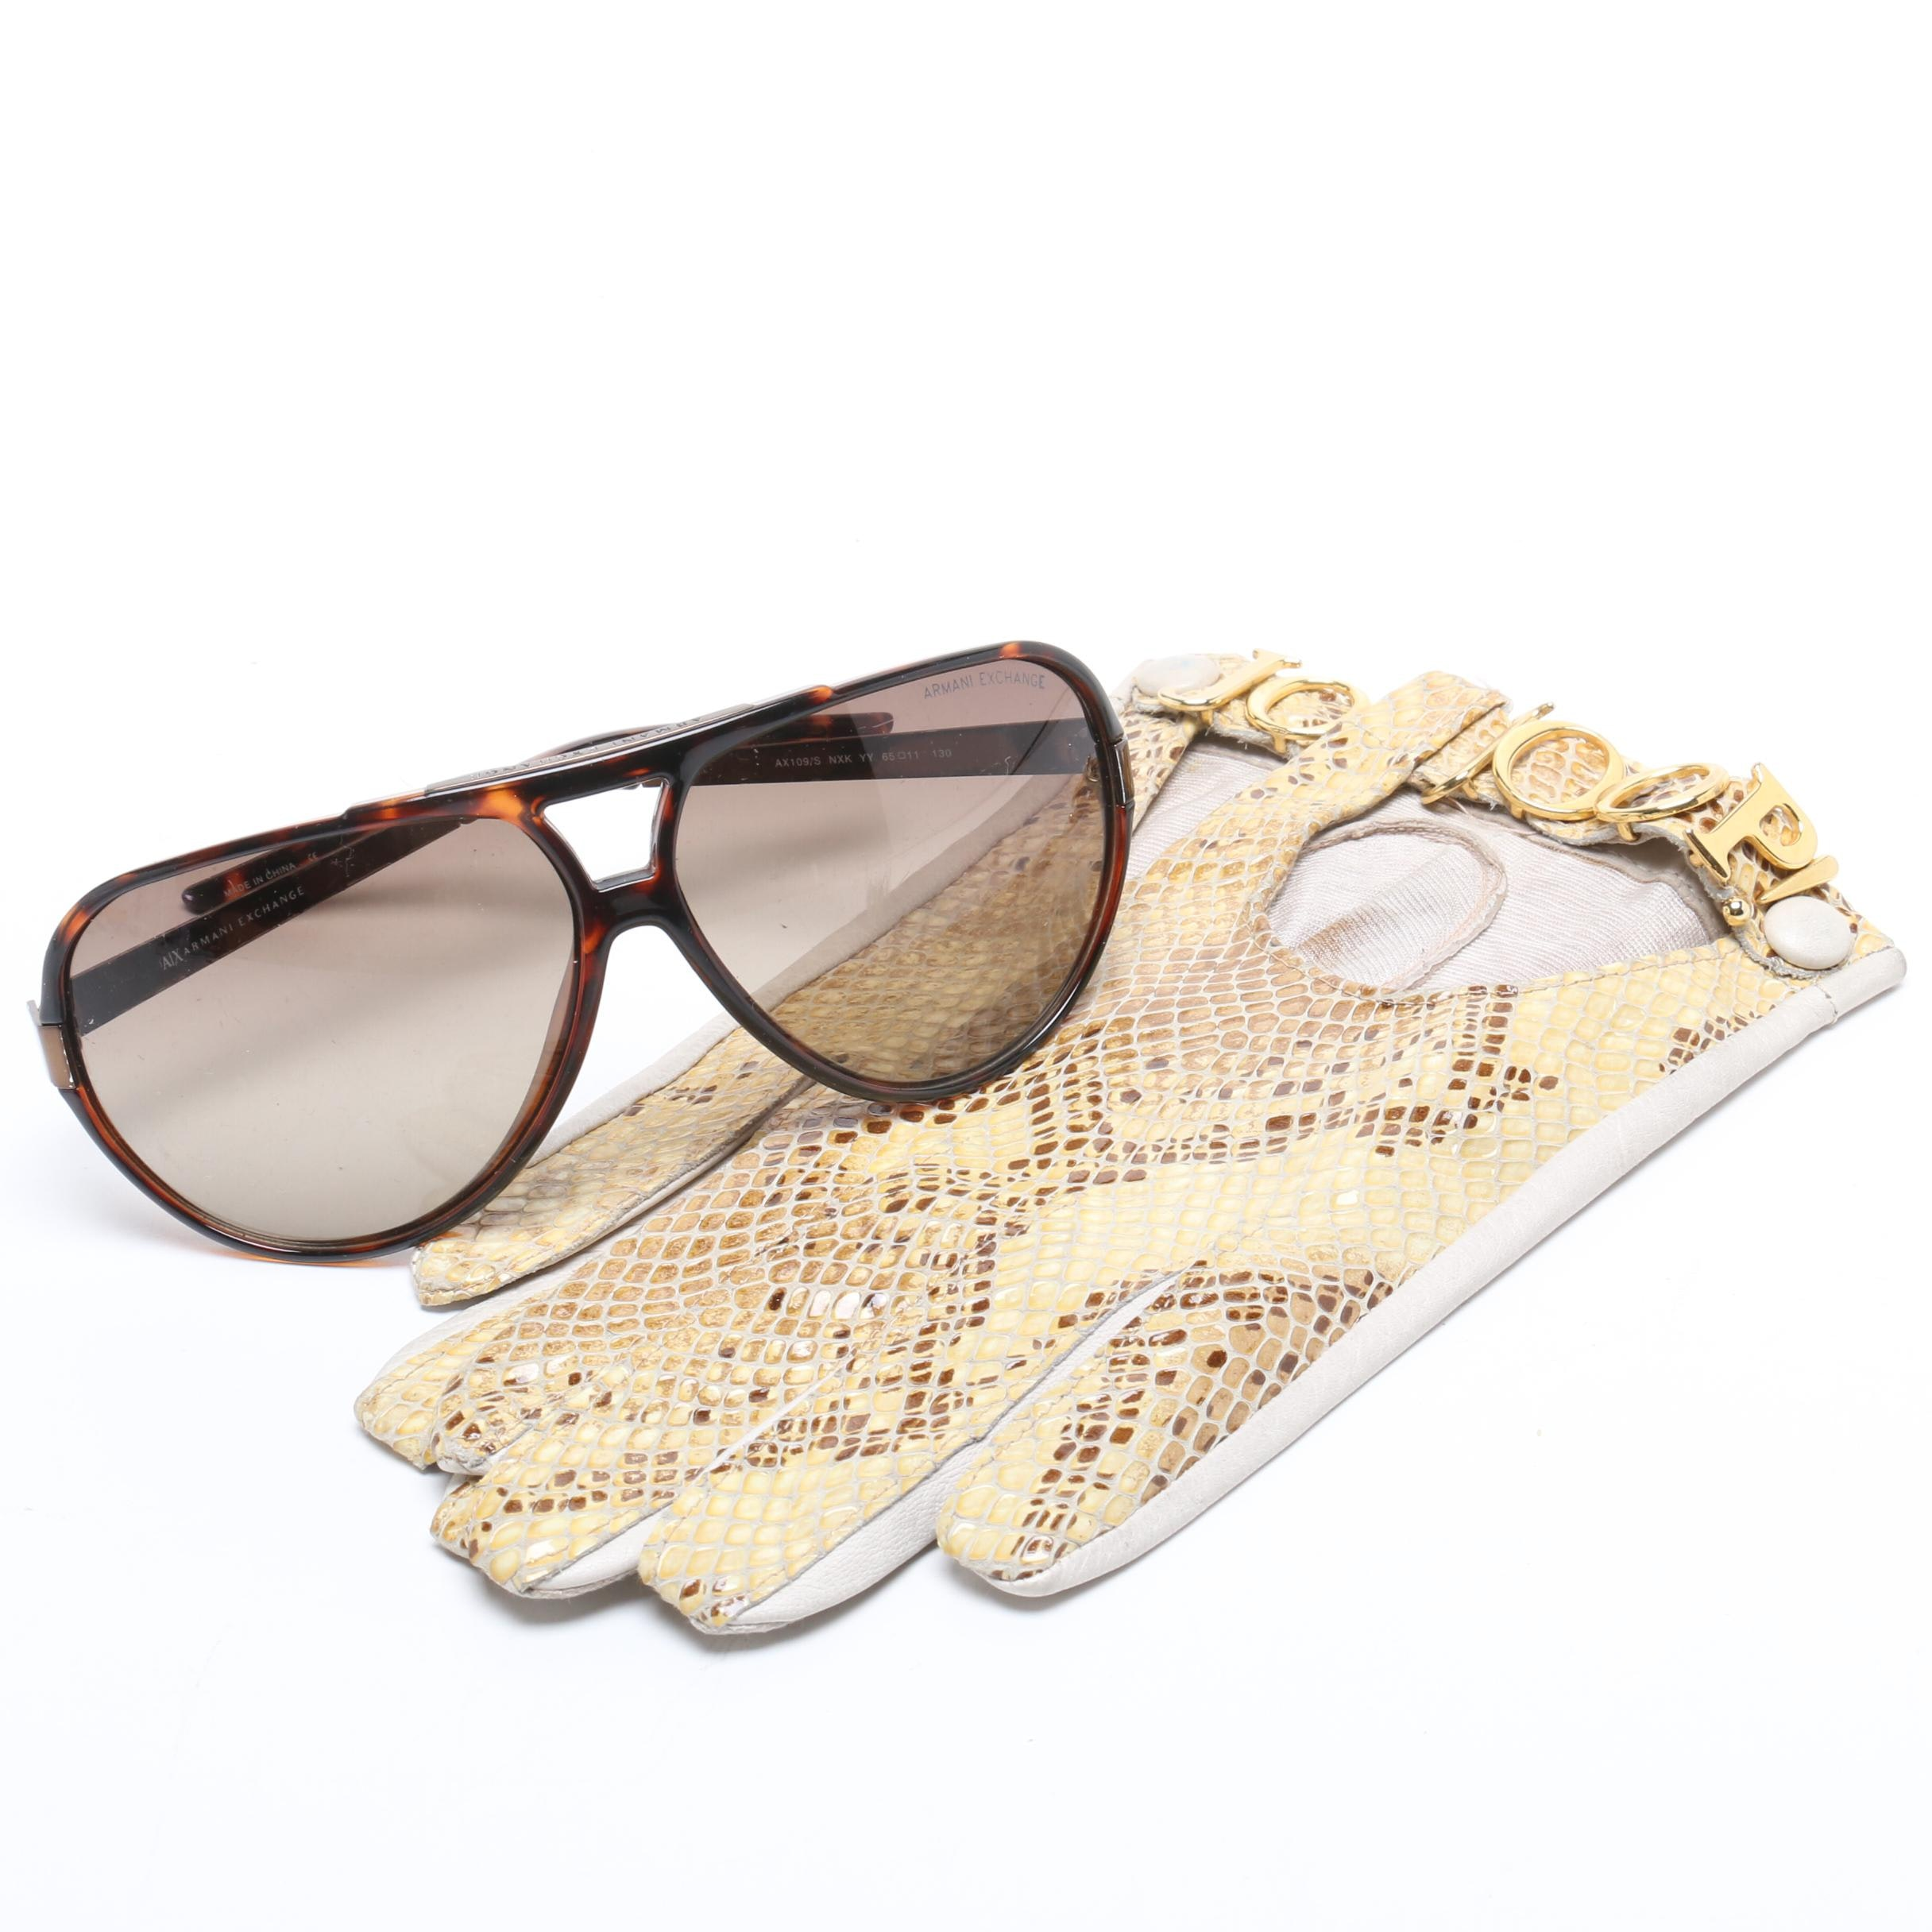 Joop Python Snakeskin and Leather Gloves and Armani Exchange Sunglasses